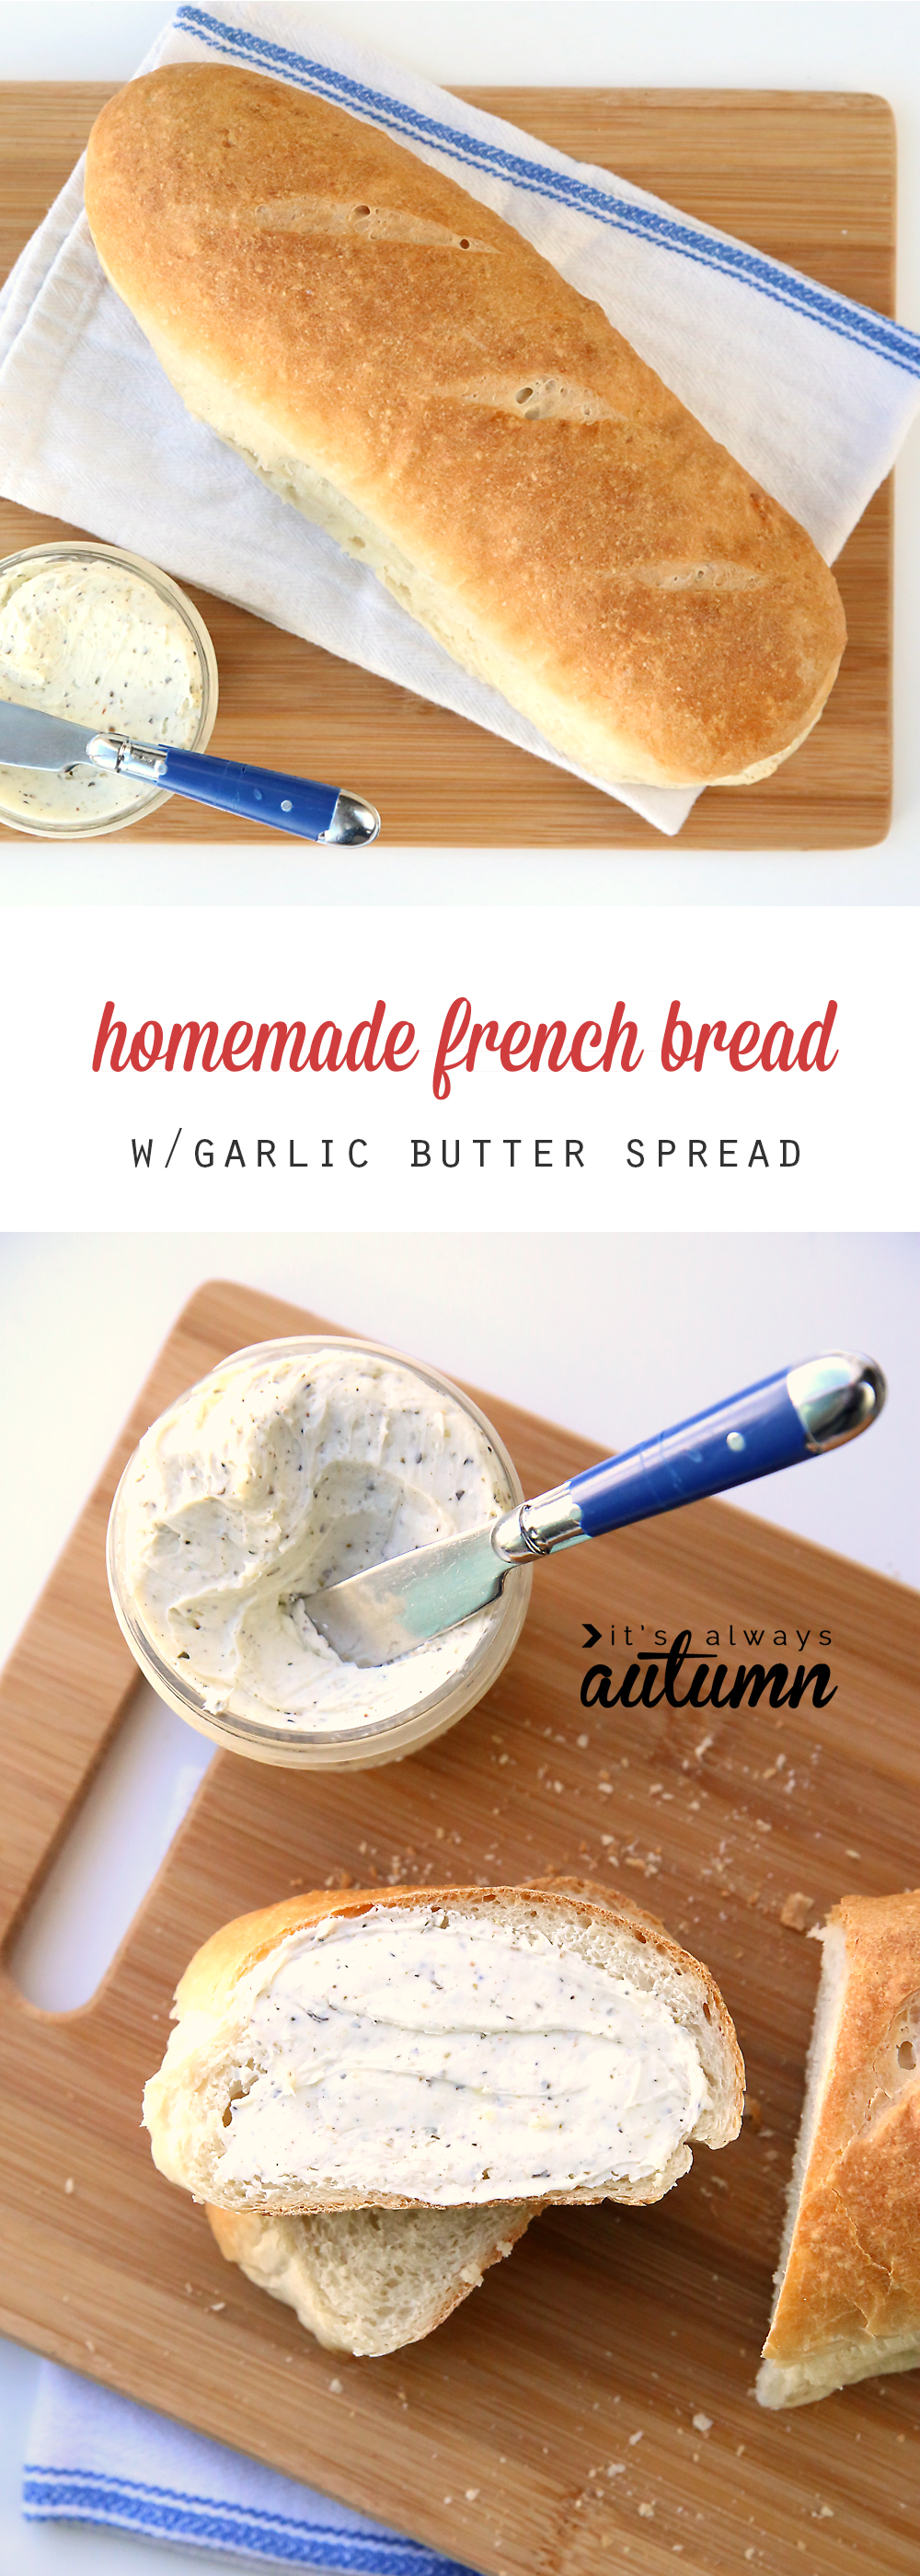 You can make amazing french bread at home with this fool proof recipe! Easy to follow step by step video included.